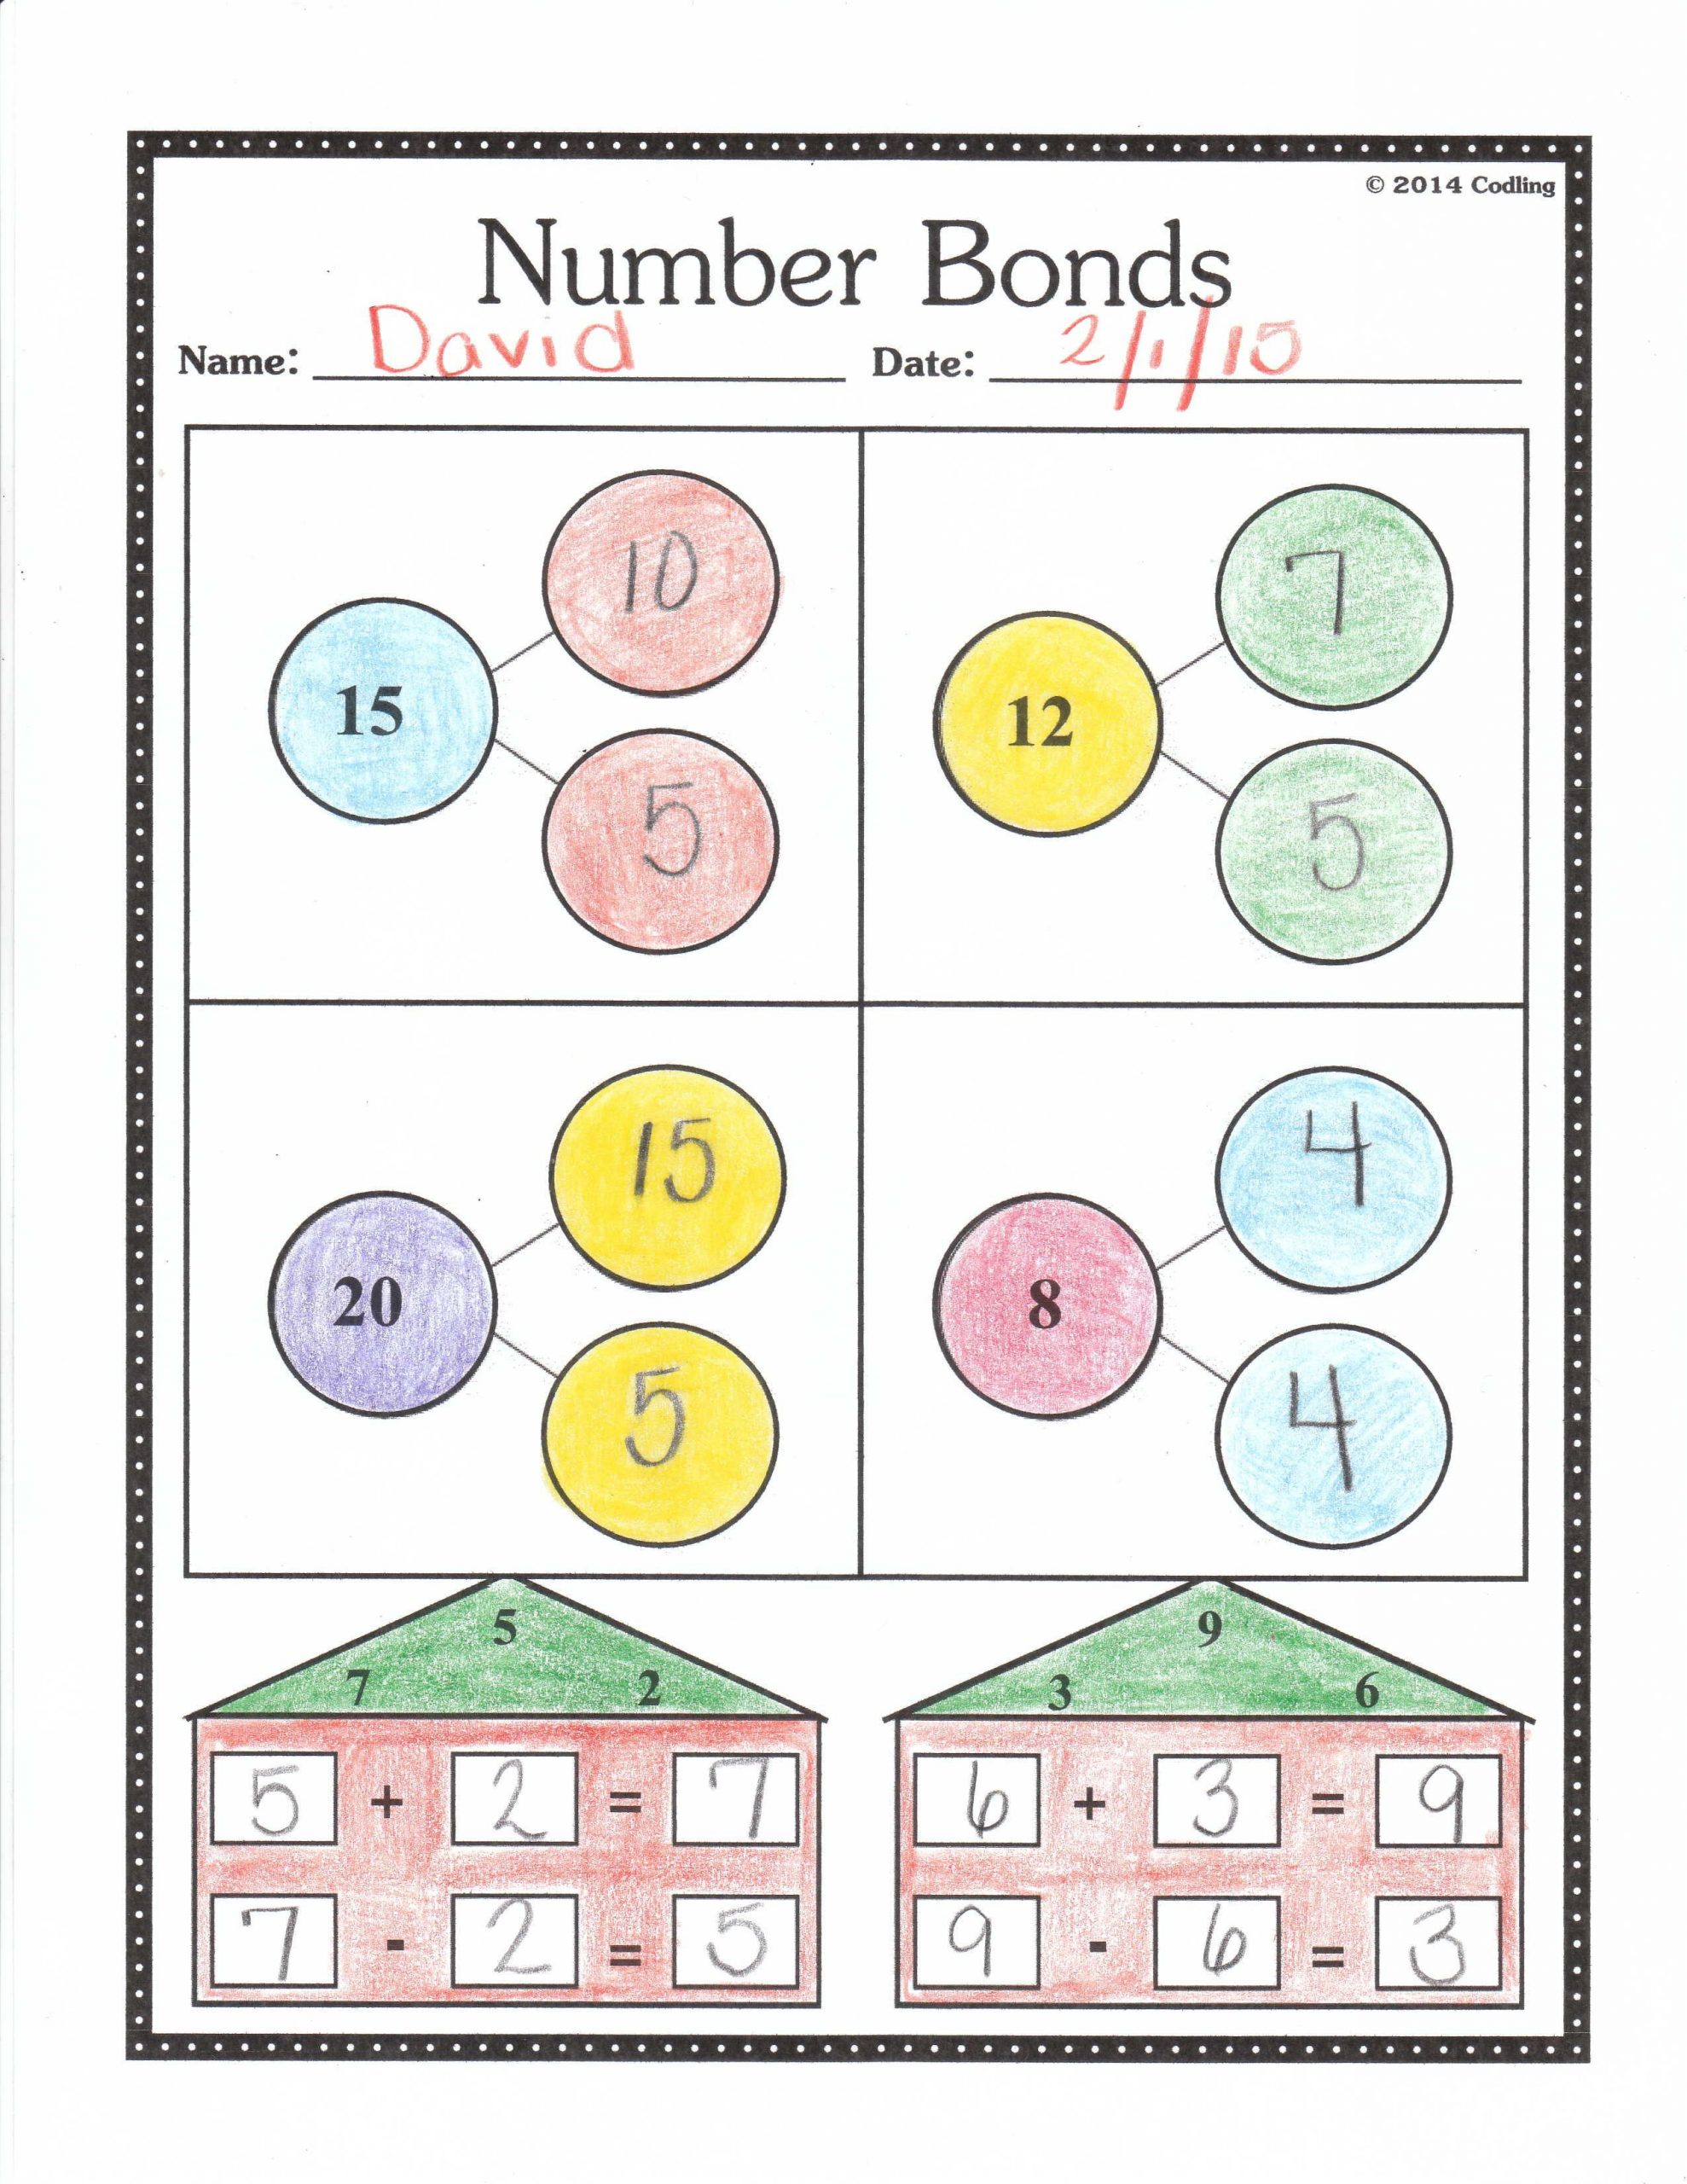 Number Bond Worksheets 2nd Grade Number Bonds Worksheet First Grade